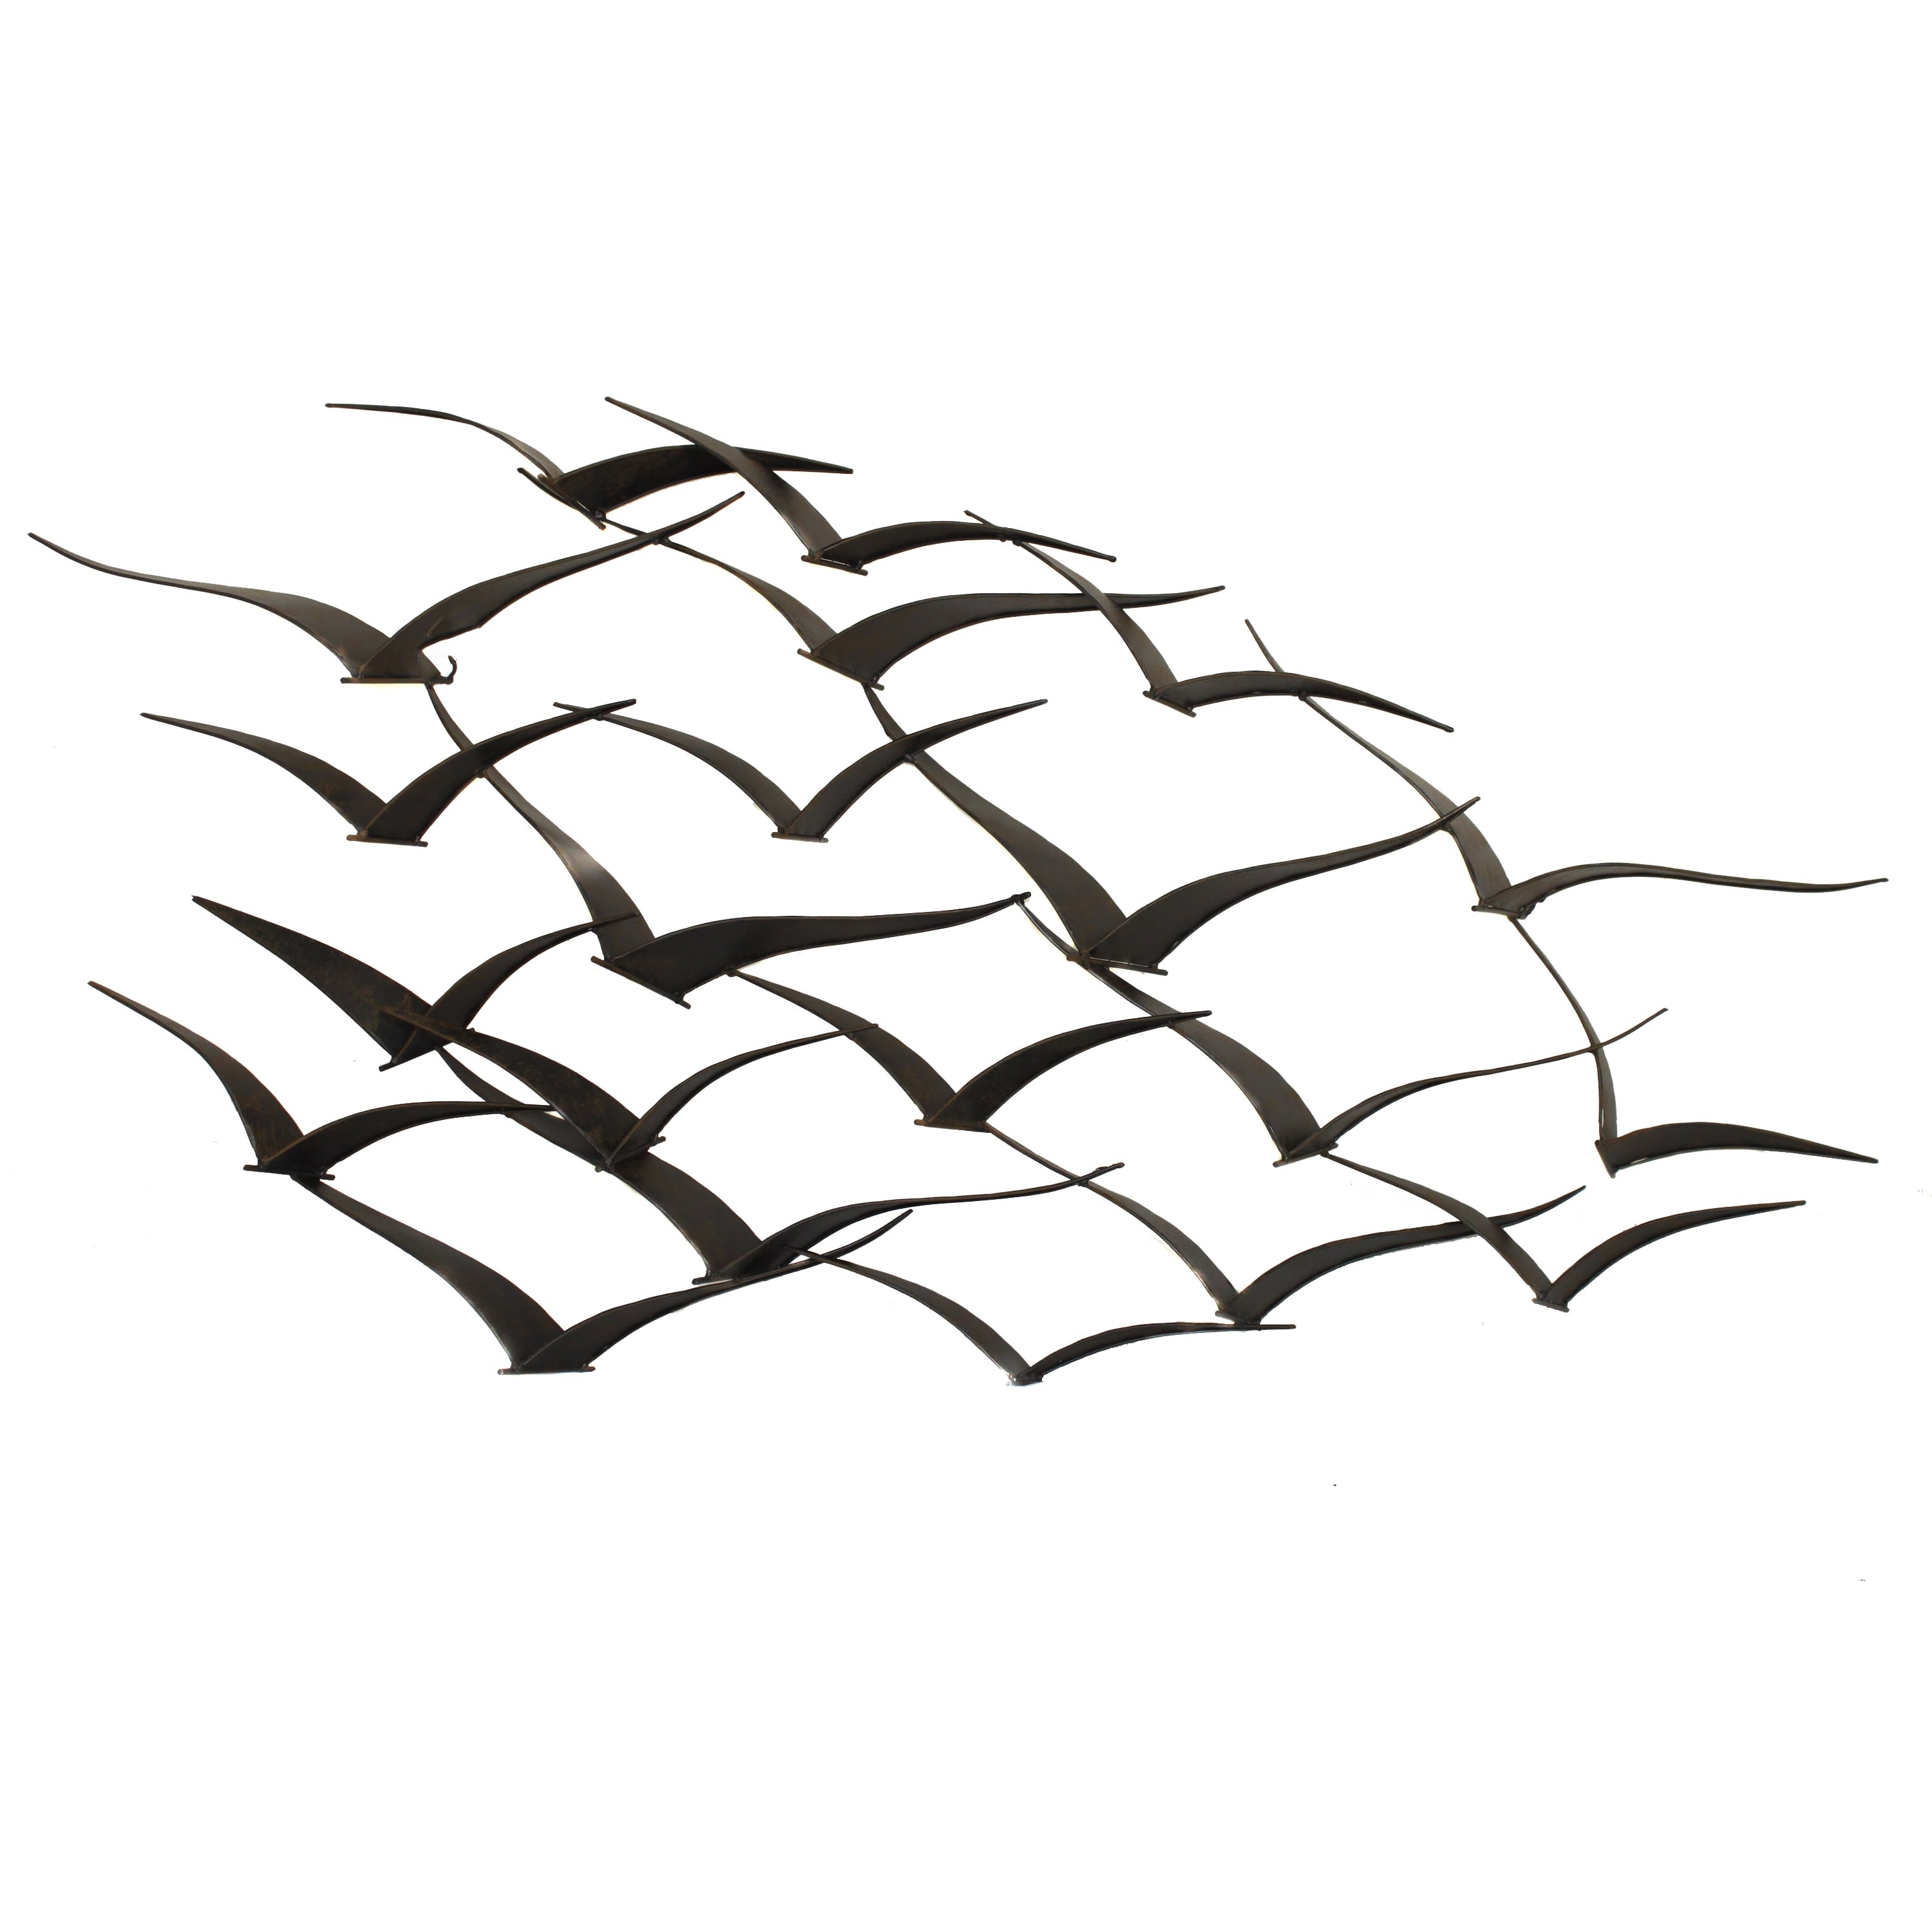 Famous Handcrafted Flock Of Metal Flying Birds Wall Art – Free Shipping Throughout Flock Of Birds Wall Art (View 6 of 15)